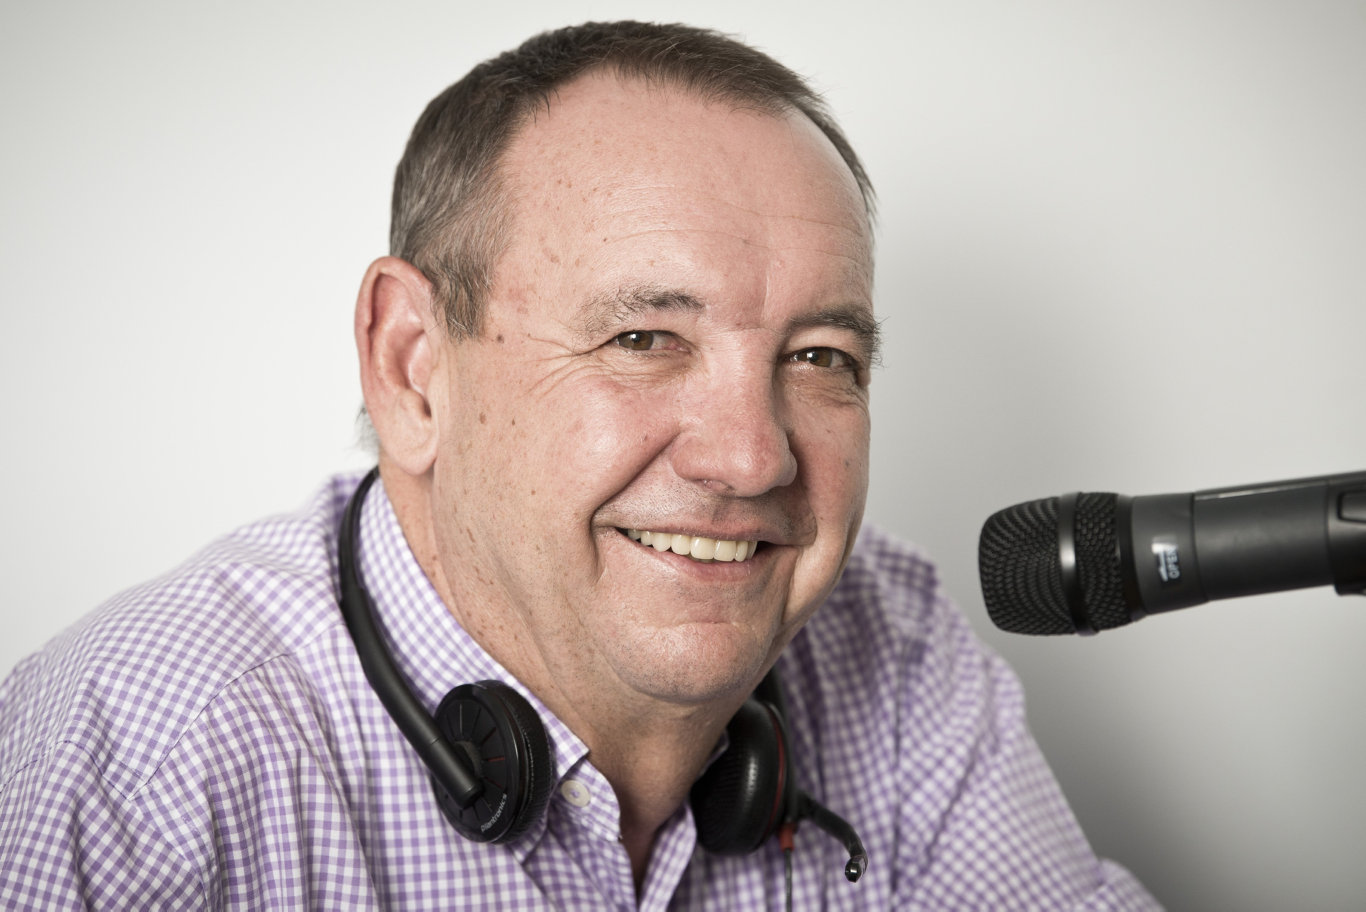 Graham Healy is the new breakfast radio host at 4WK in 2020, Monday, December 9, 2019. Picture: Kevin Farmer